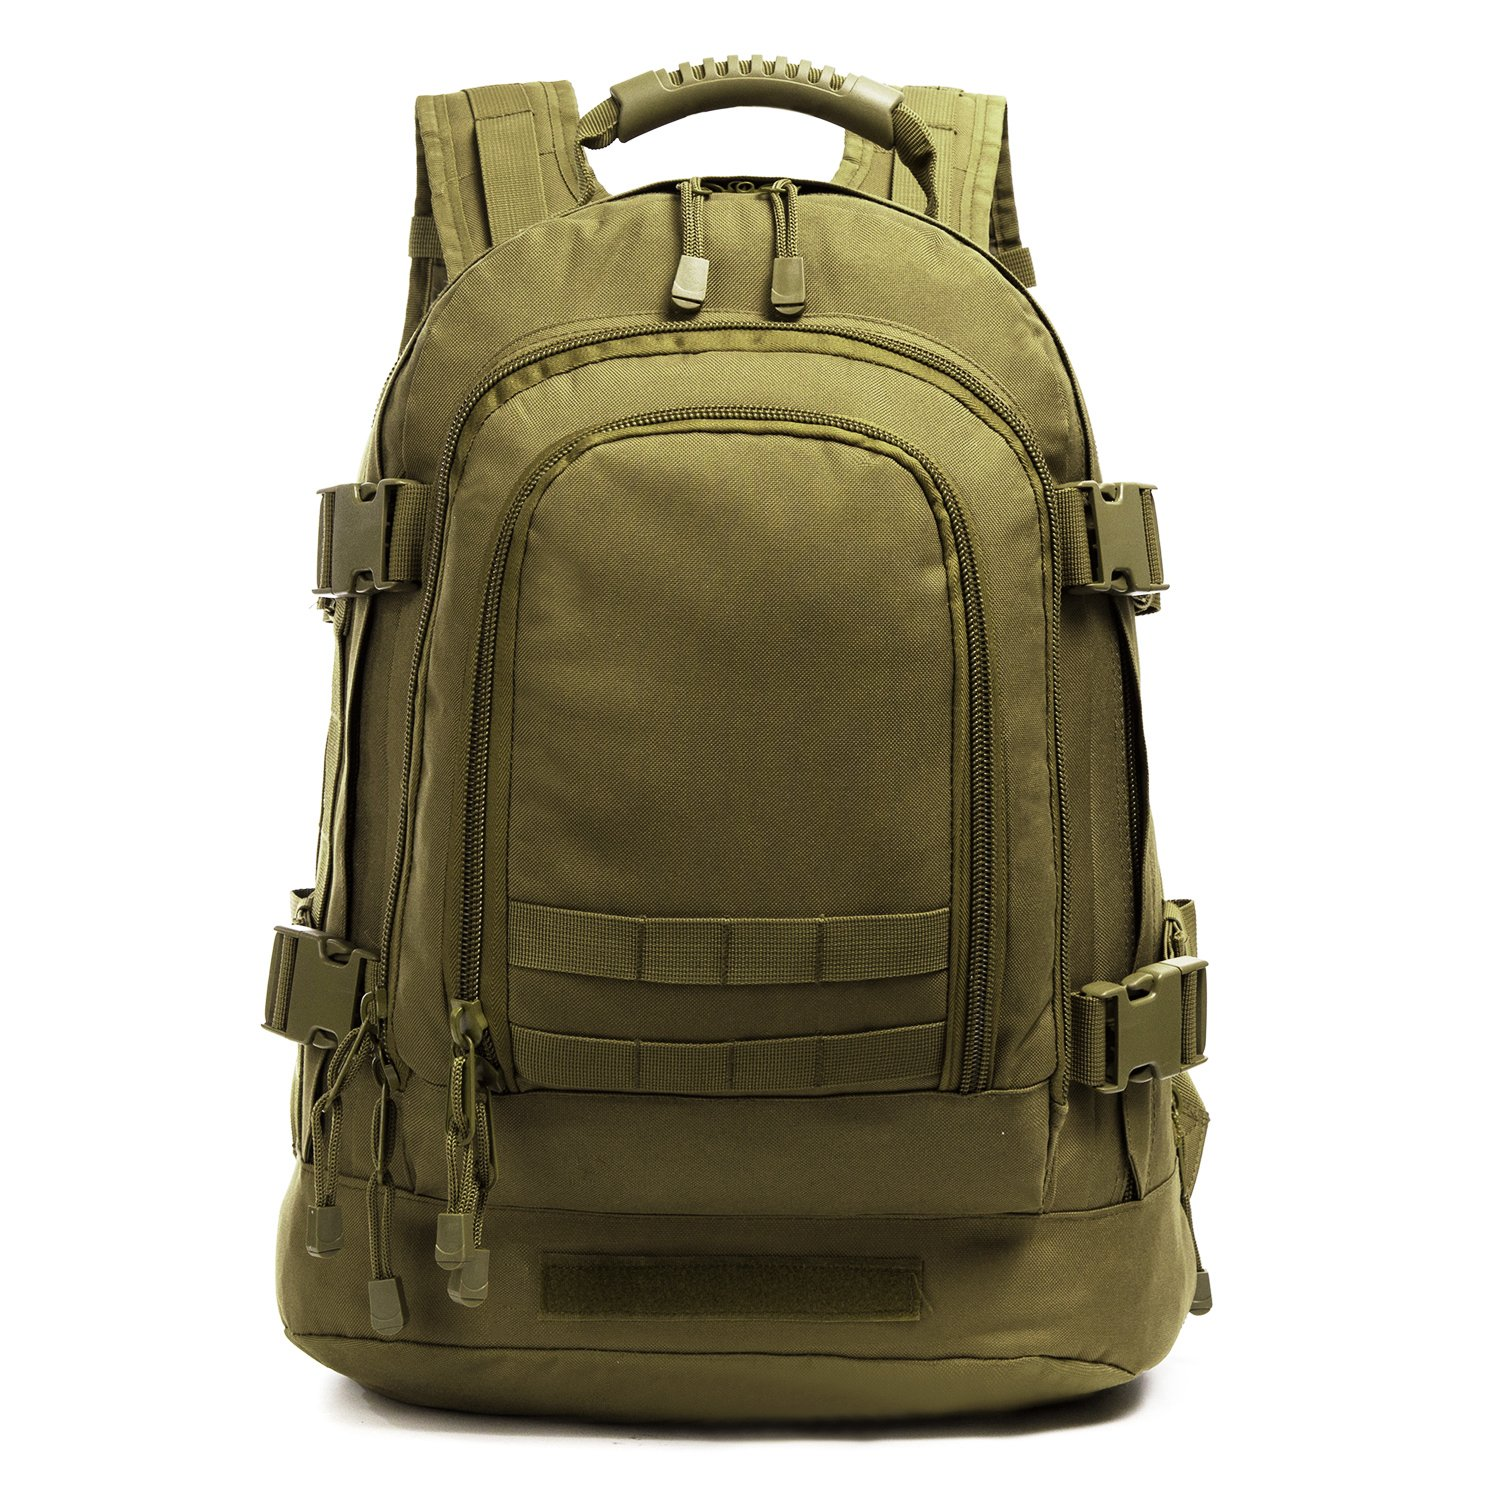 Military Outdoor Backpack,Expandable Tactical Backpack,Travel Backpack,DIY System Up to 64L Loading Space for Travel,Camping,Hunting,Trekking and Hiking (Green, Not with Belt)